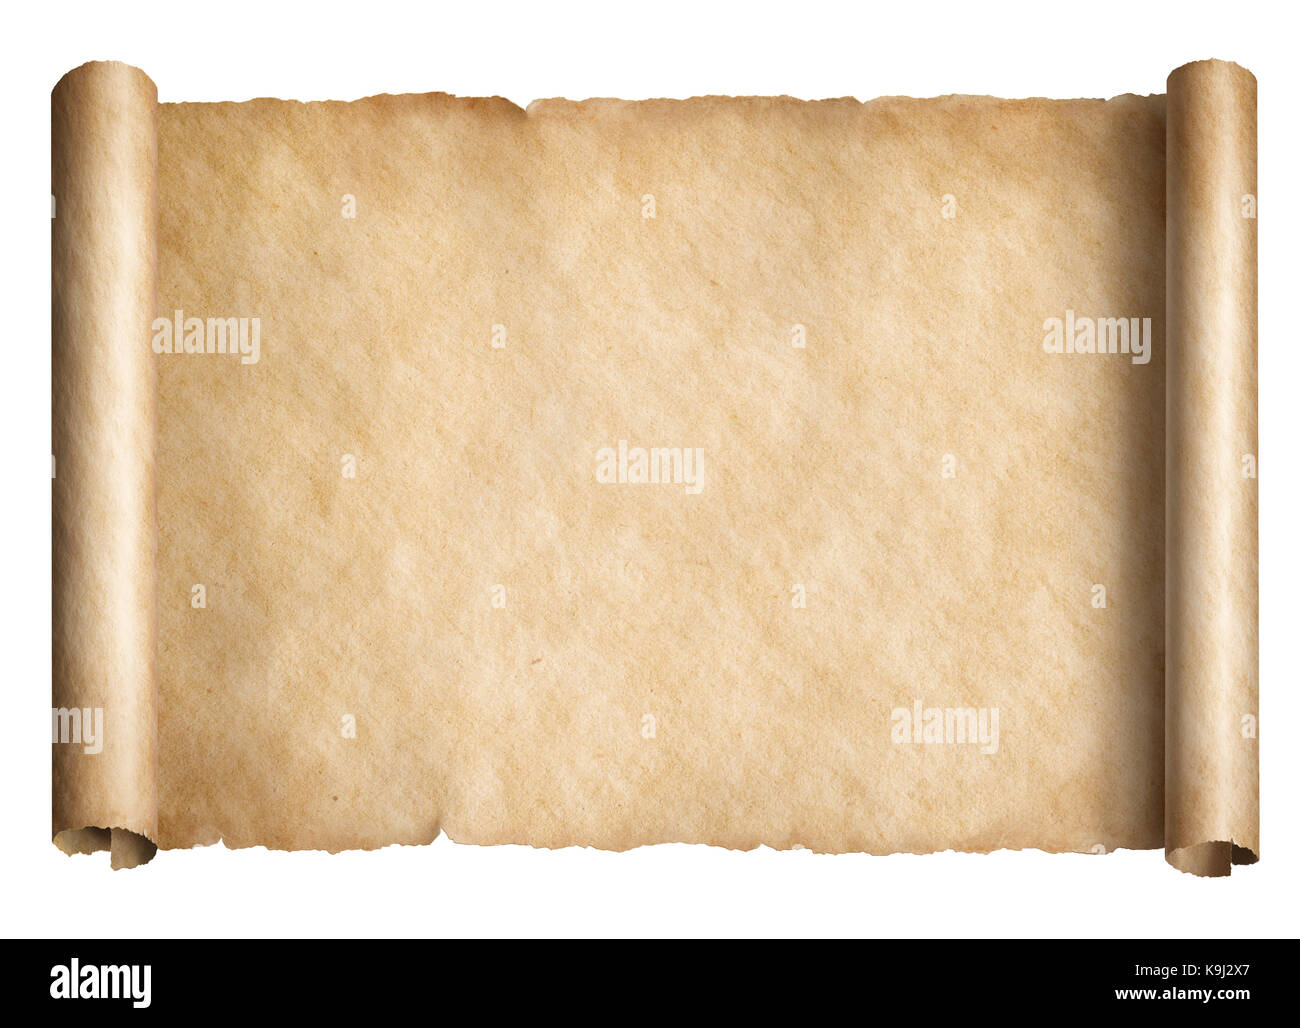 Old paper scroll or parchment isolated horizontally oriented 3d illustration - Stock Image